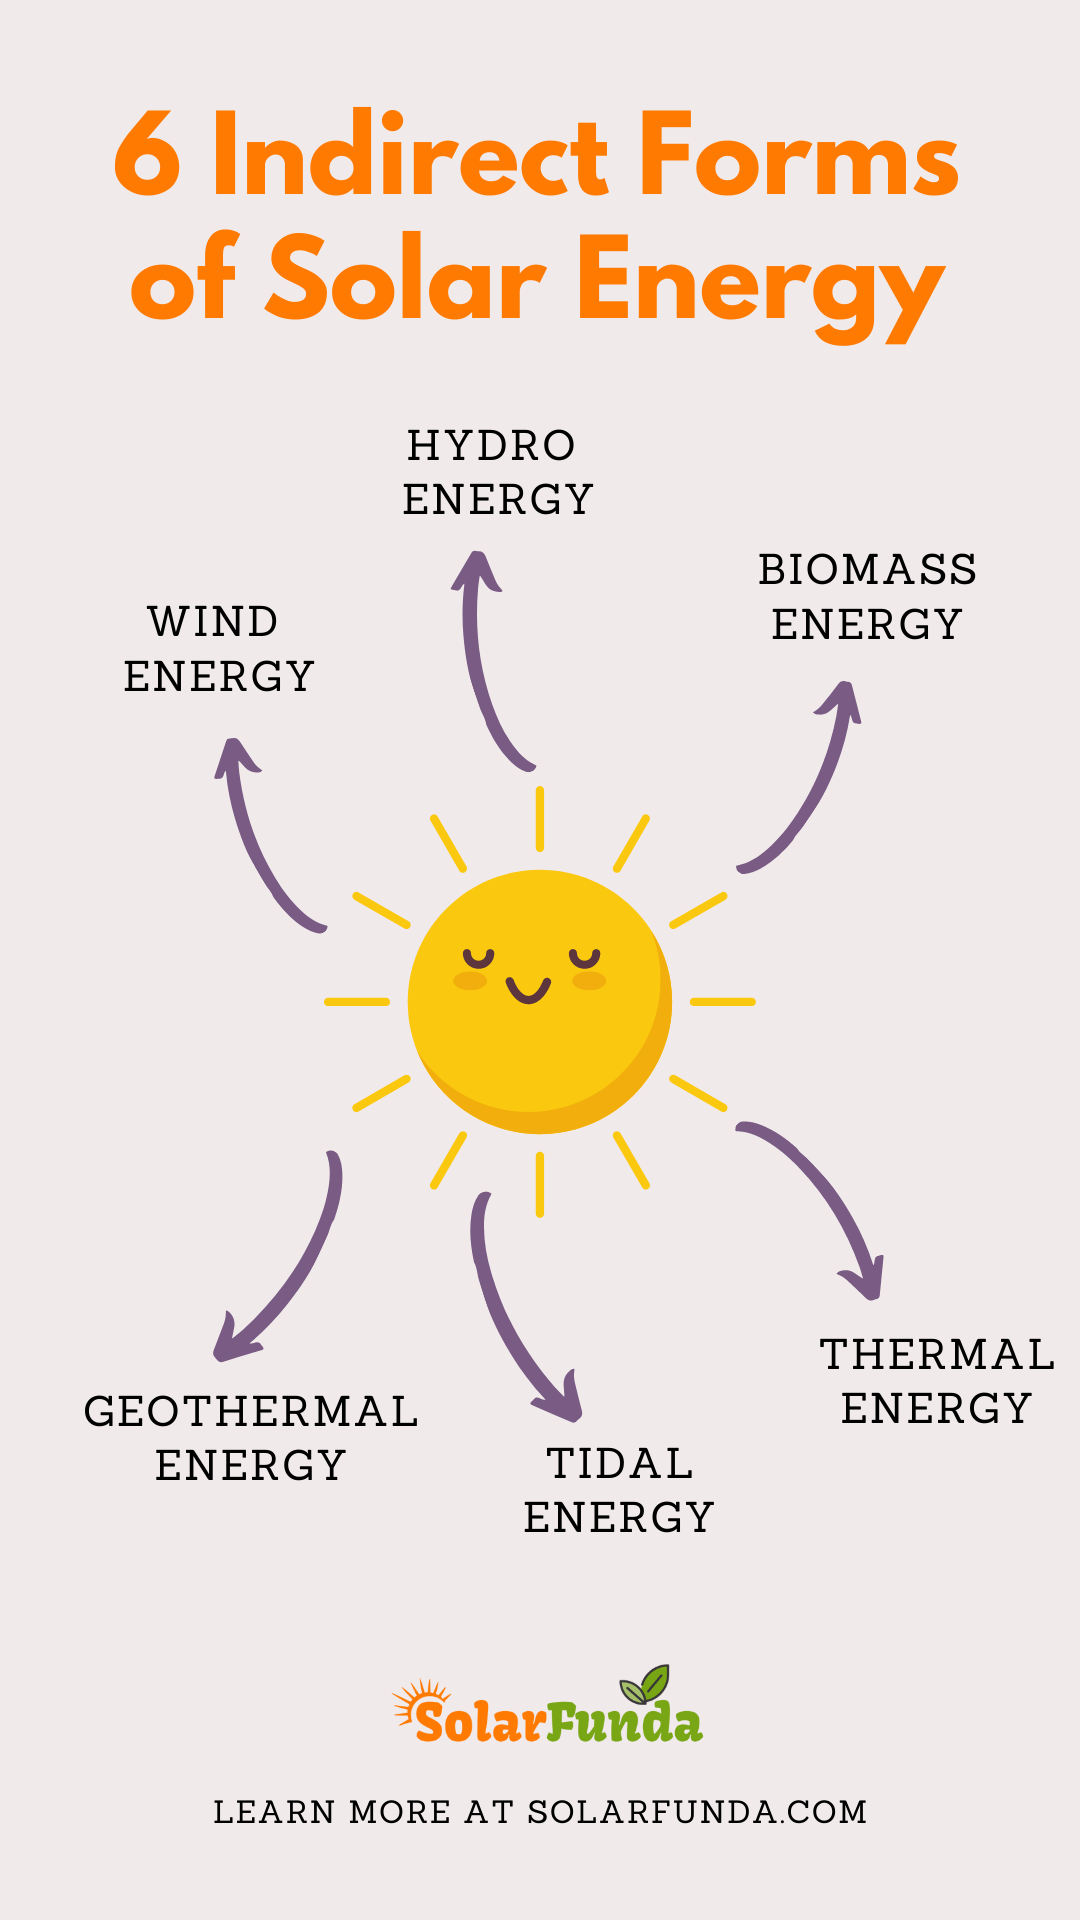 Indirect Forms of Solar Energy